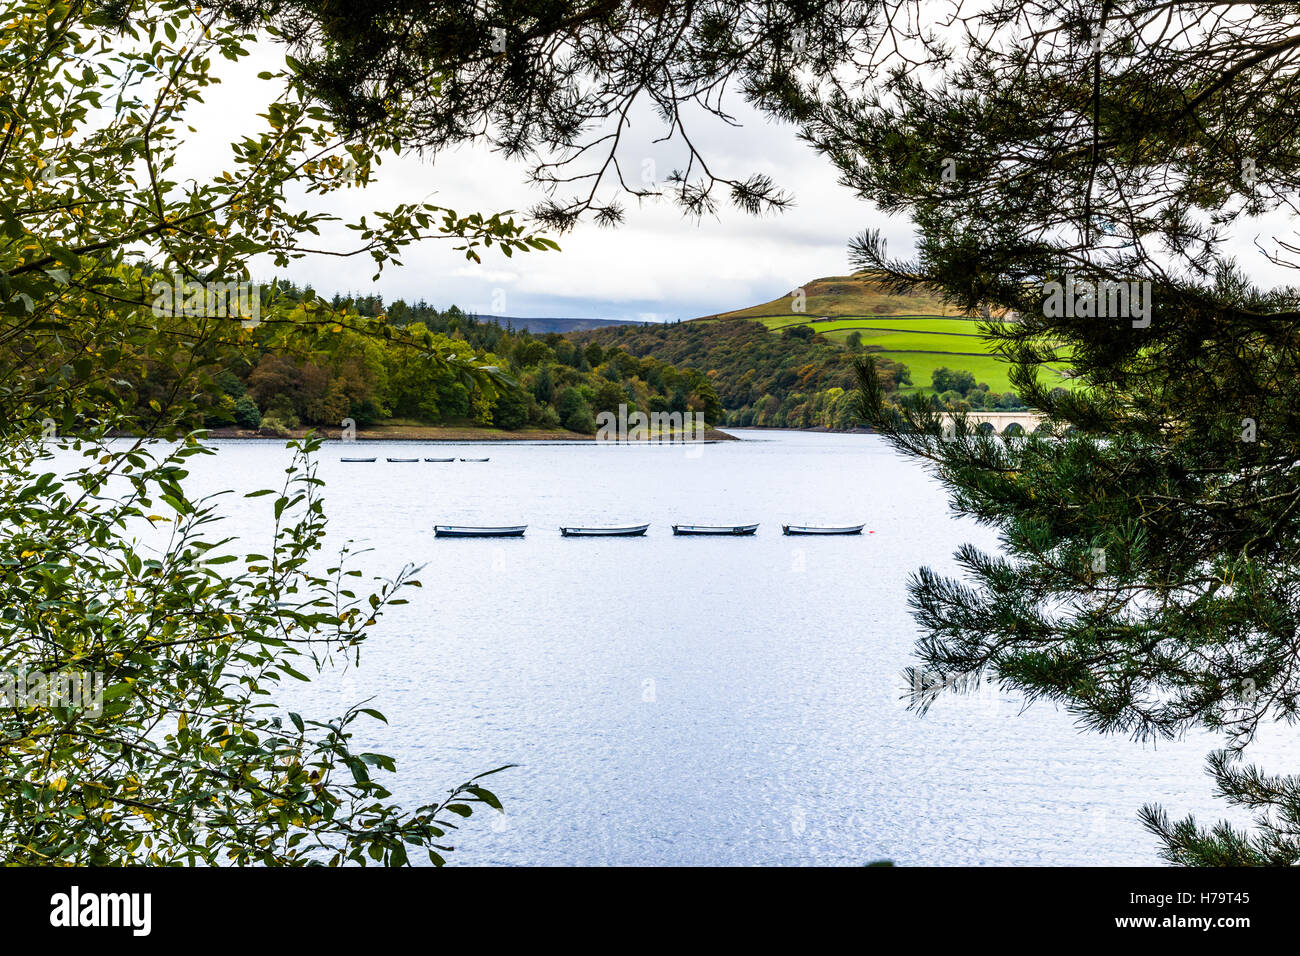 Ladybower Reservoir at Bamford in the county of Derbyshire. - Stock Image